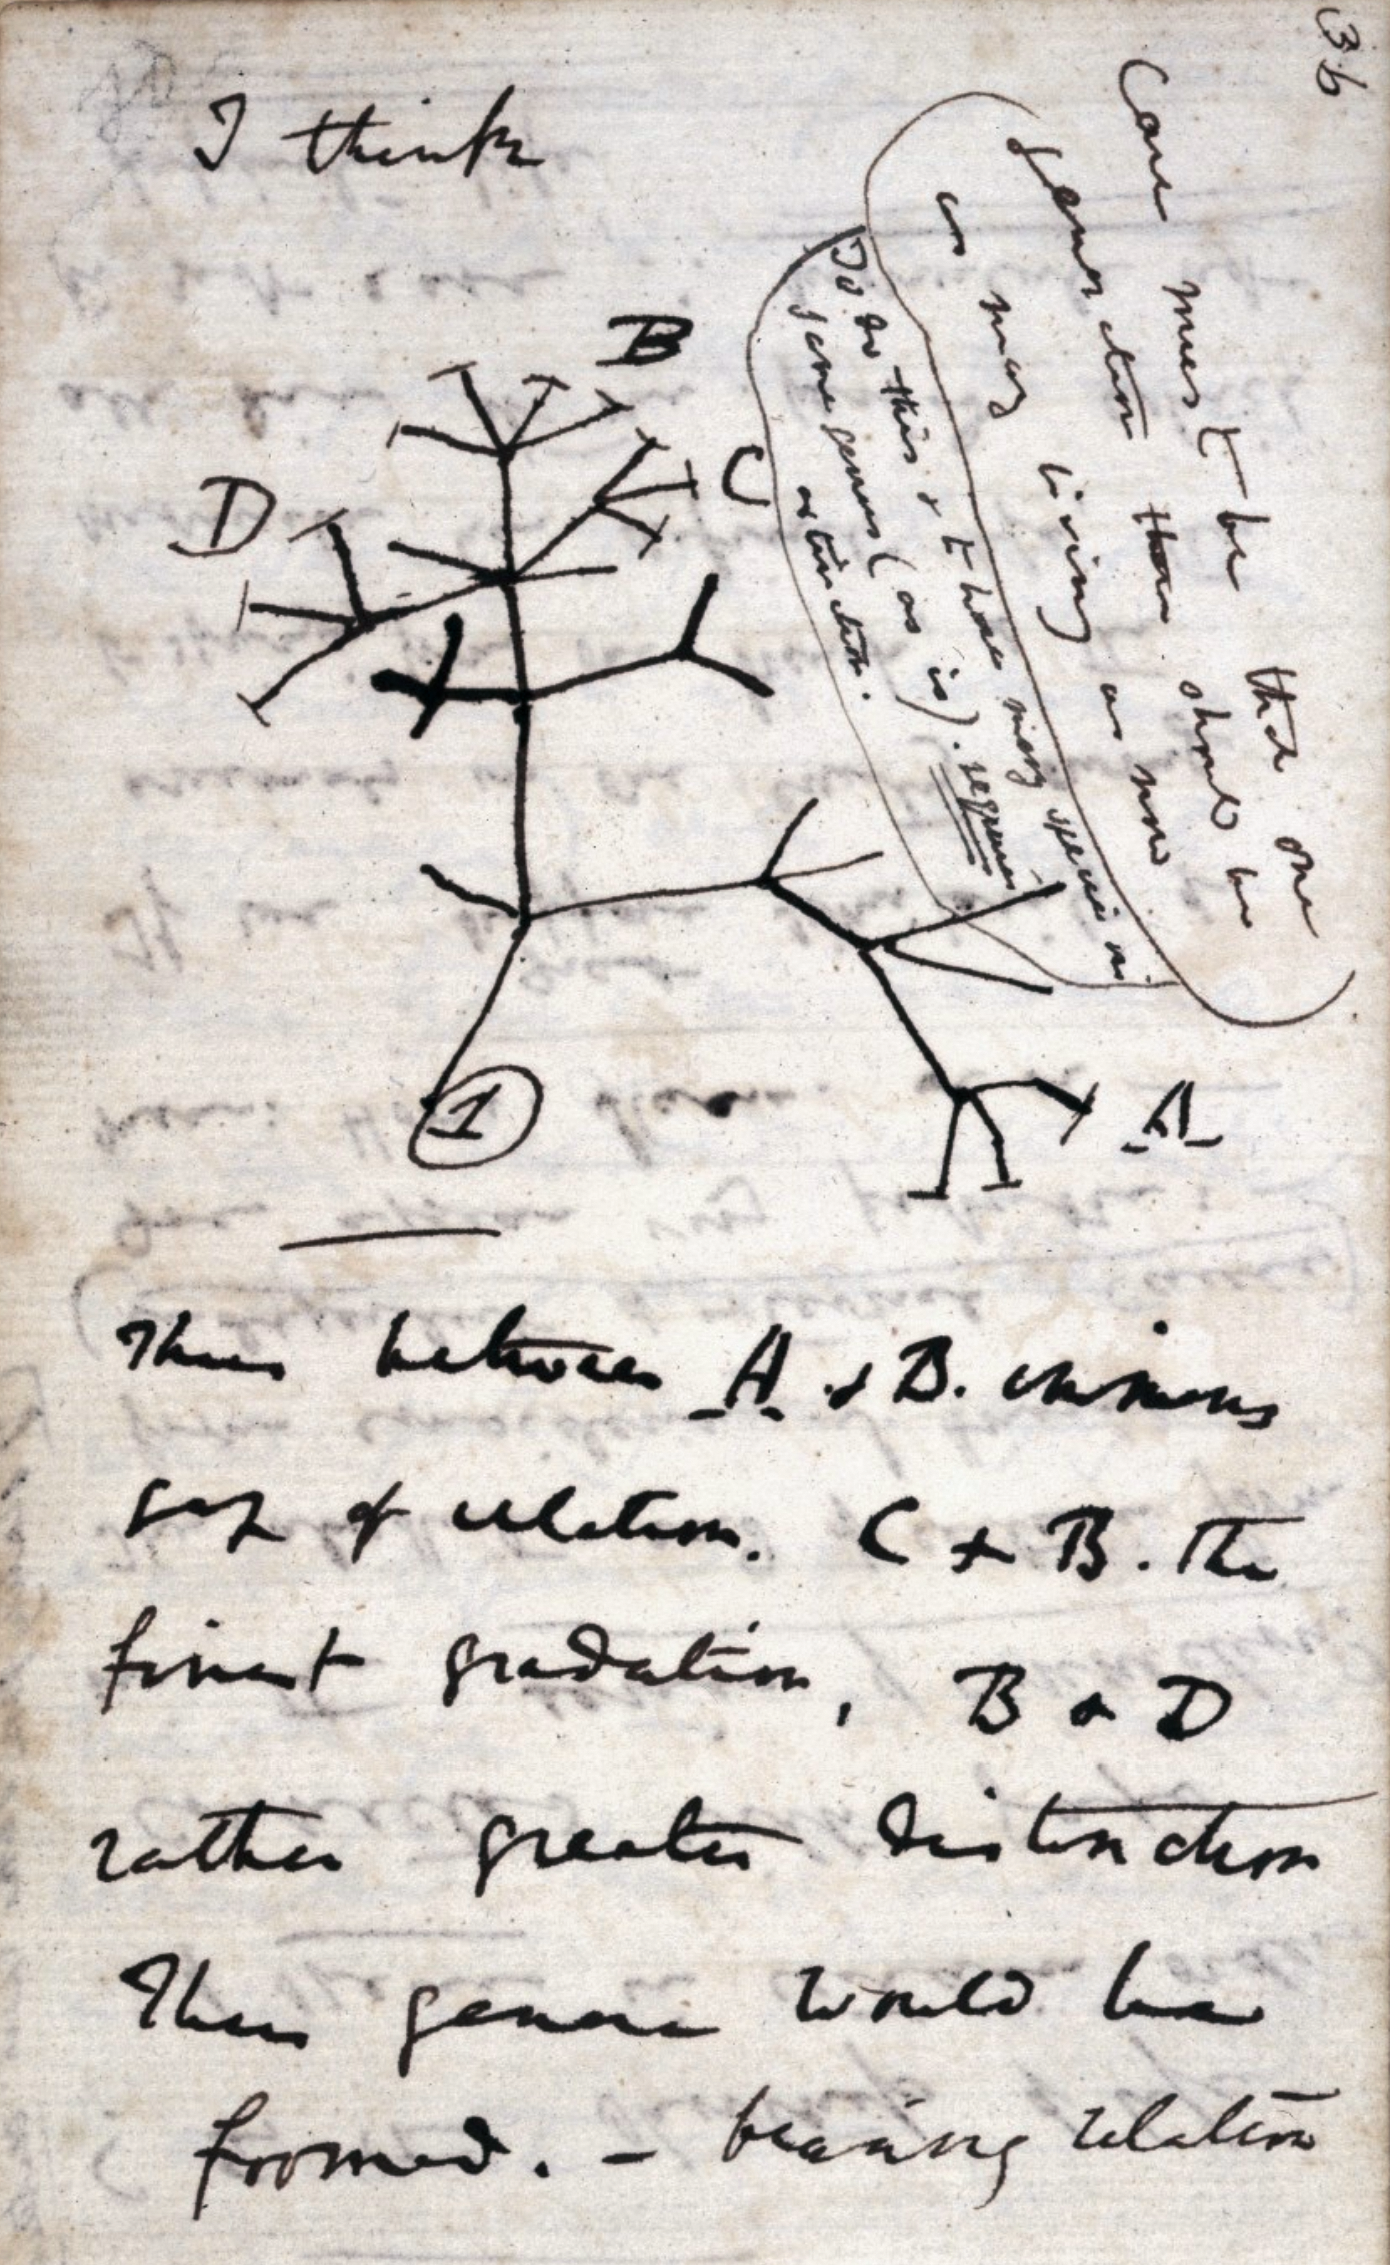 https://upload.wikimedia.org/wikipedia/commons/1/10/Darwin_Tree_1837.png